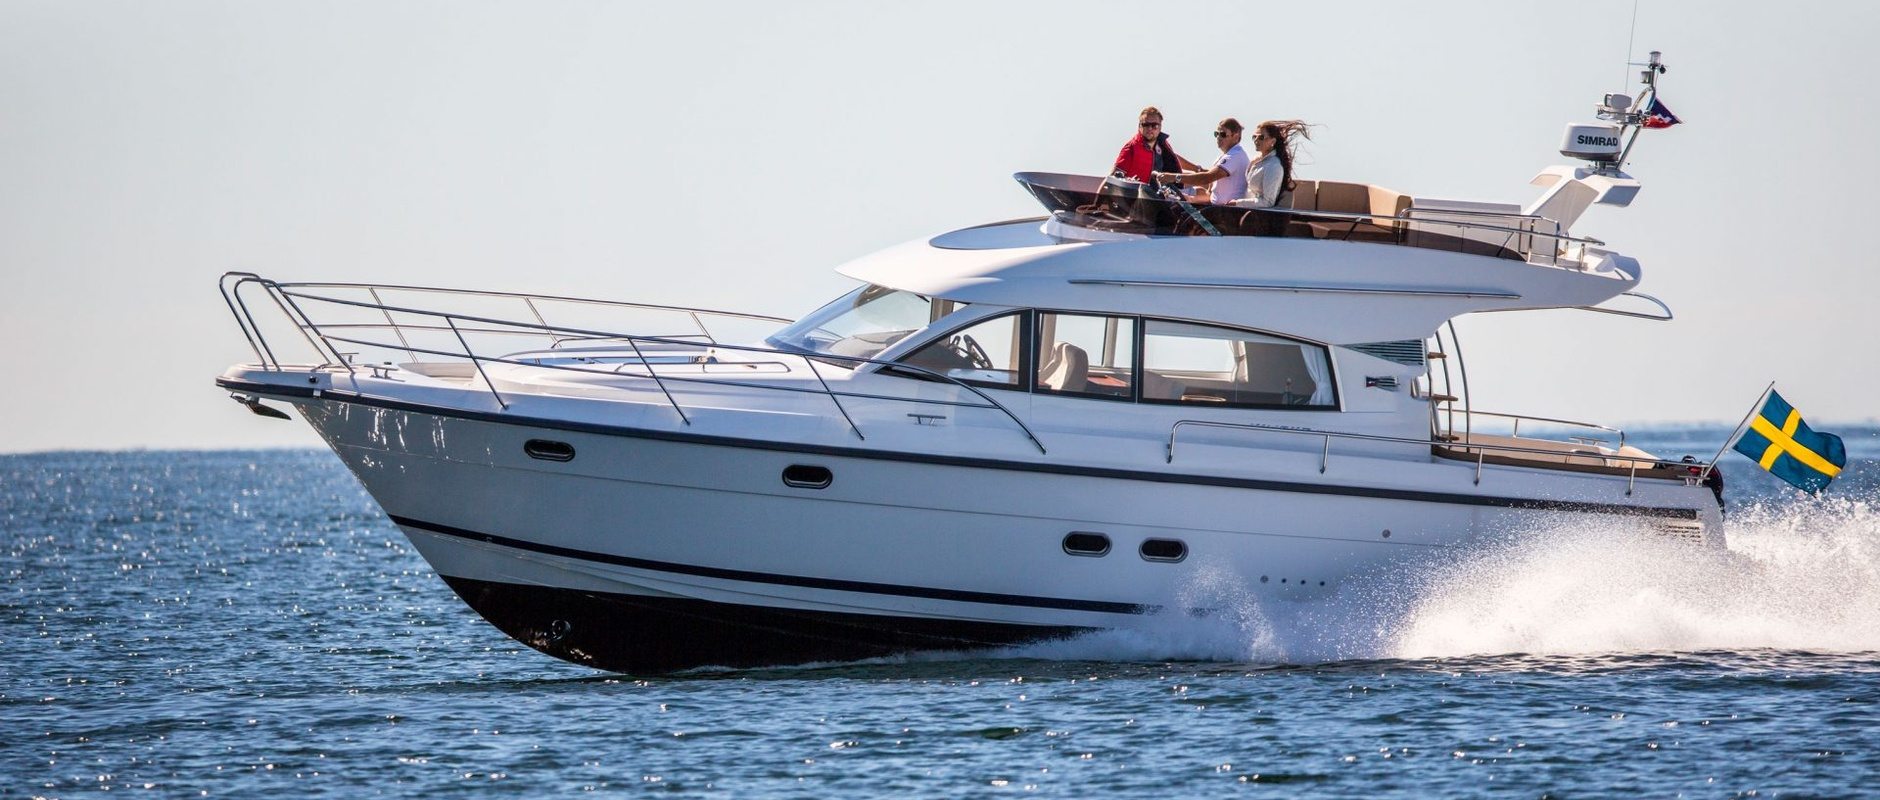 We talk in detail about an all-weather boat equipped with an open flybridge and a heating system